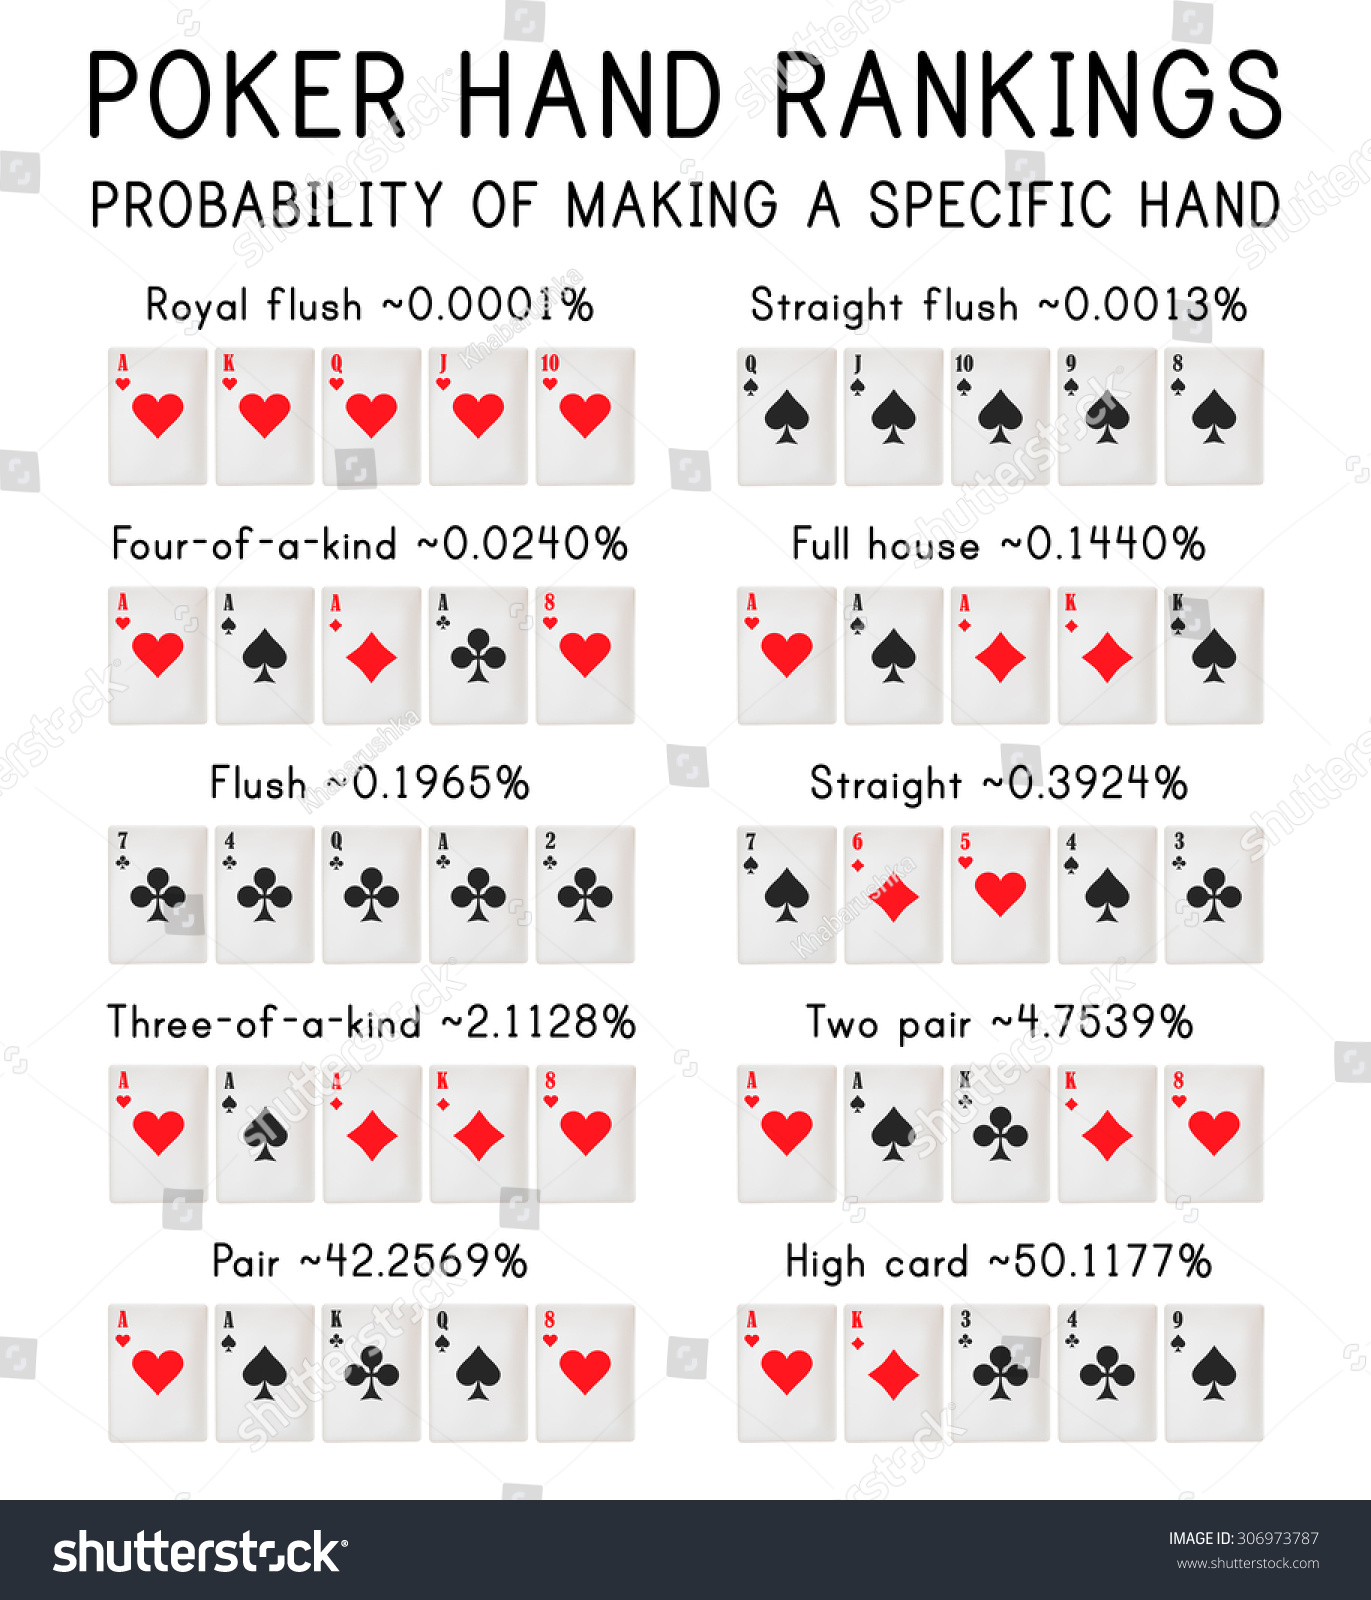 rank of hands in texas holdem